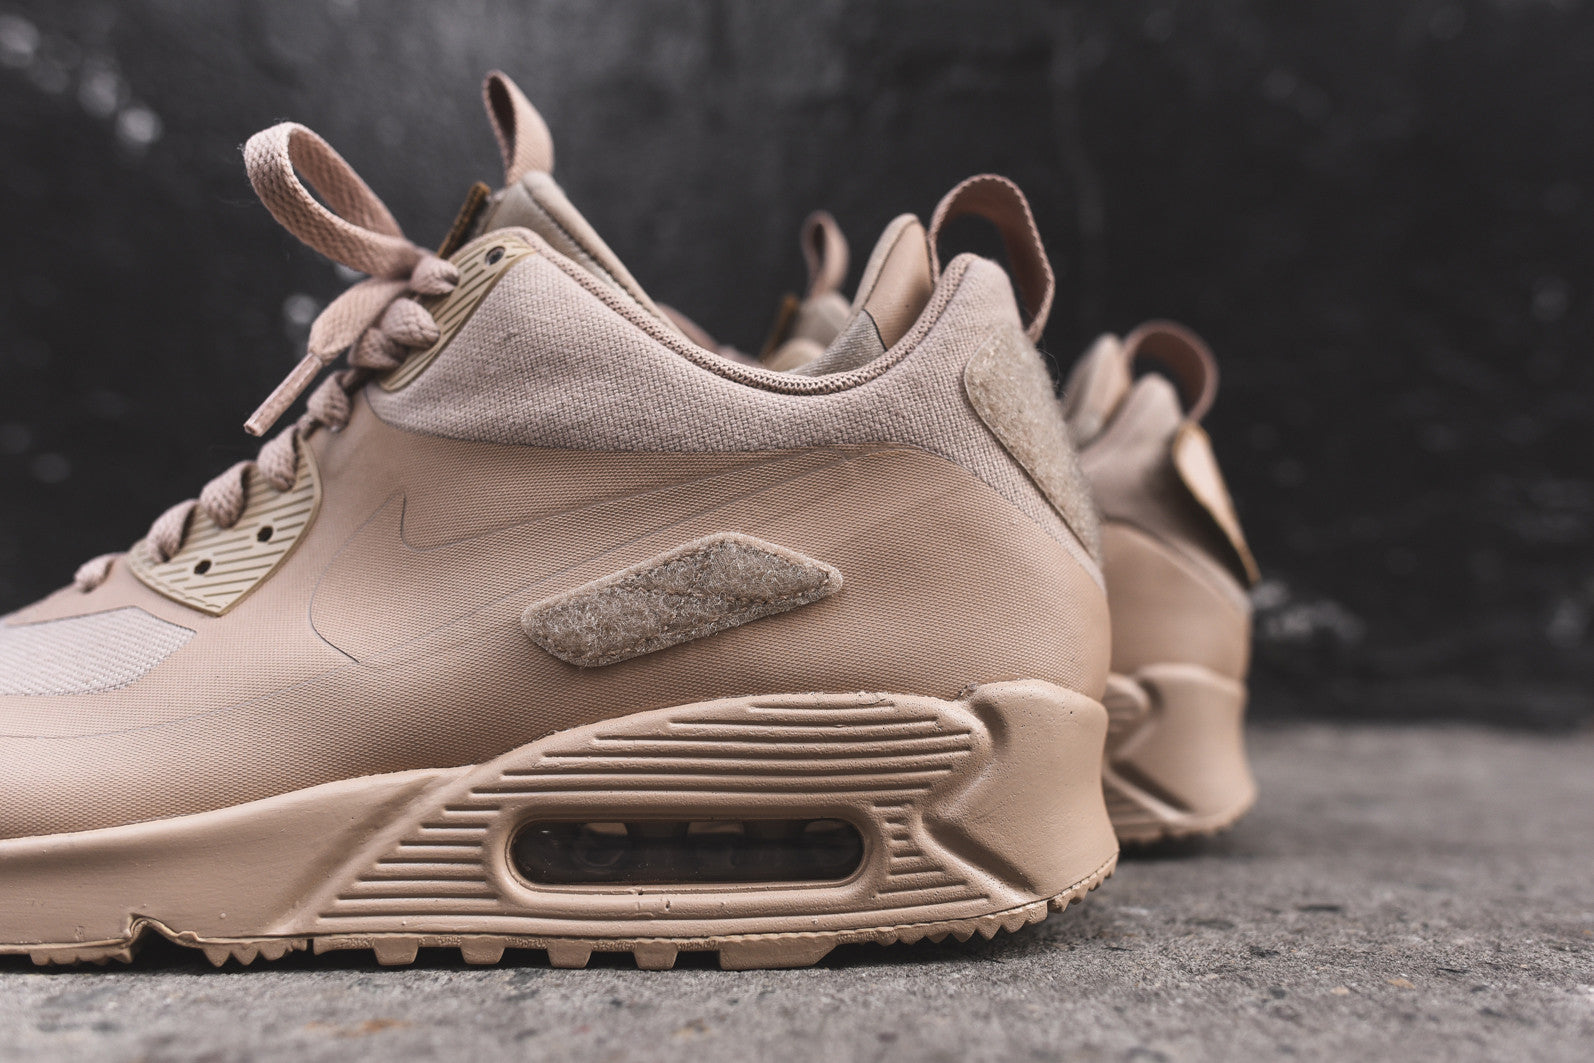 separation shoes 8b582 d56f3 Air Max 90 Patch Sand